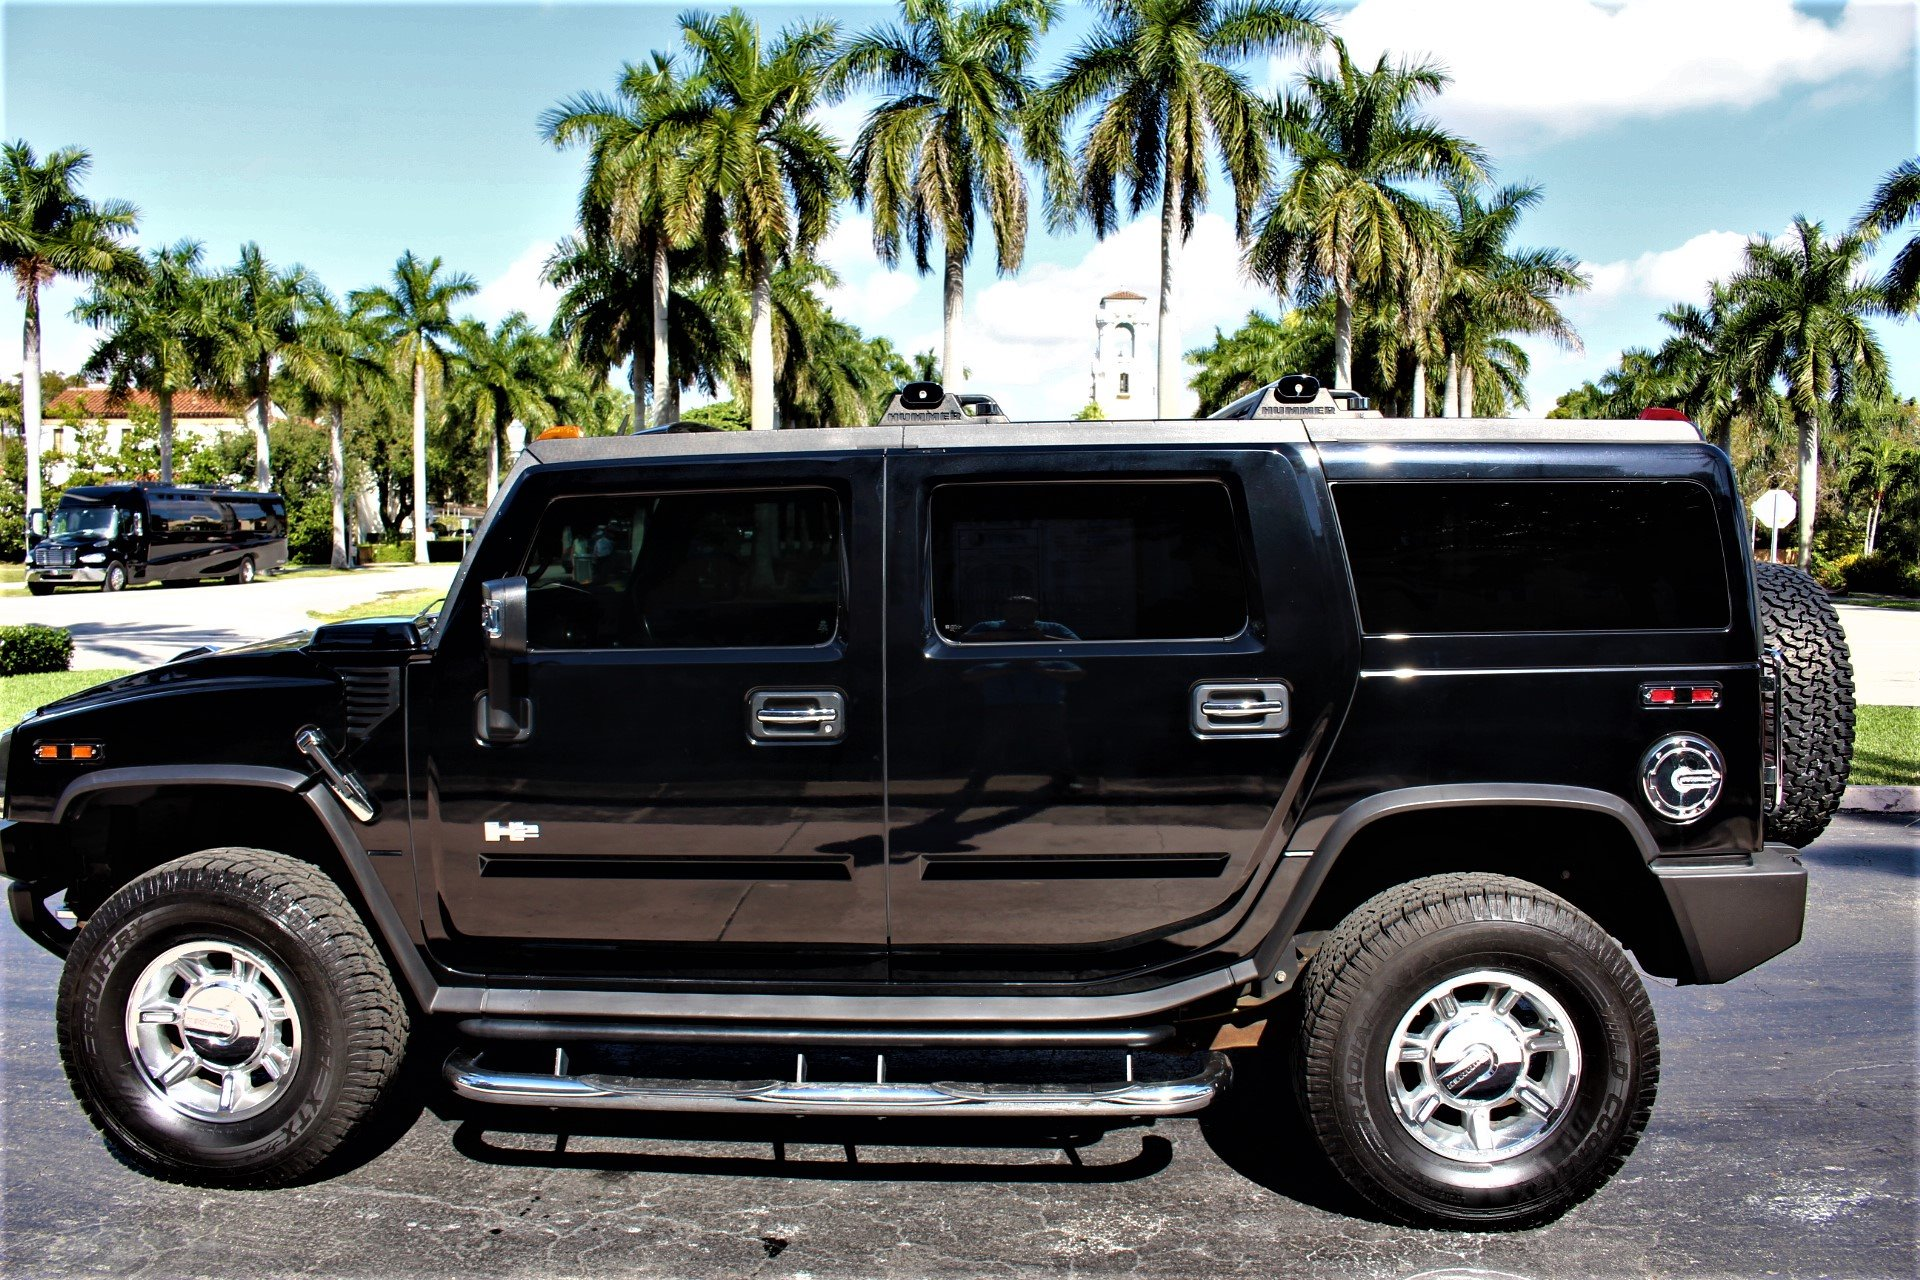 Used 2007 HUMMER H2 for sale Sold at The Gables Sports Cars in Miami FL 33146 3